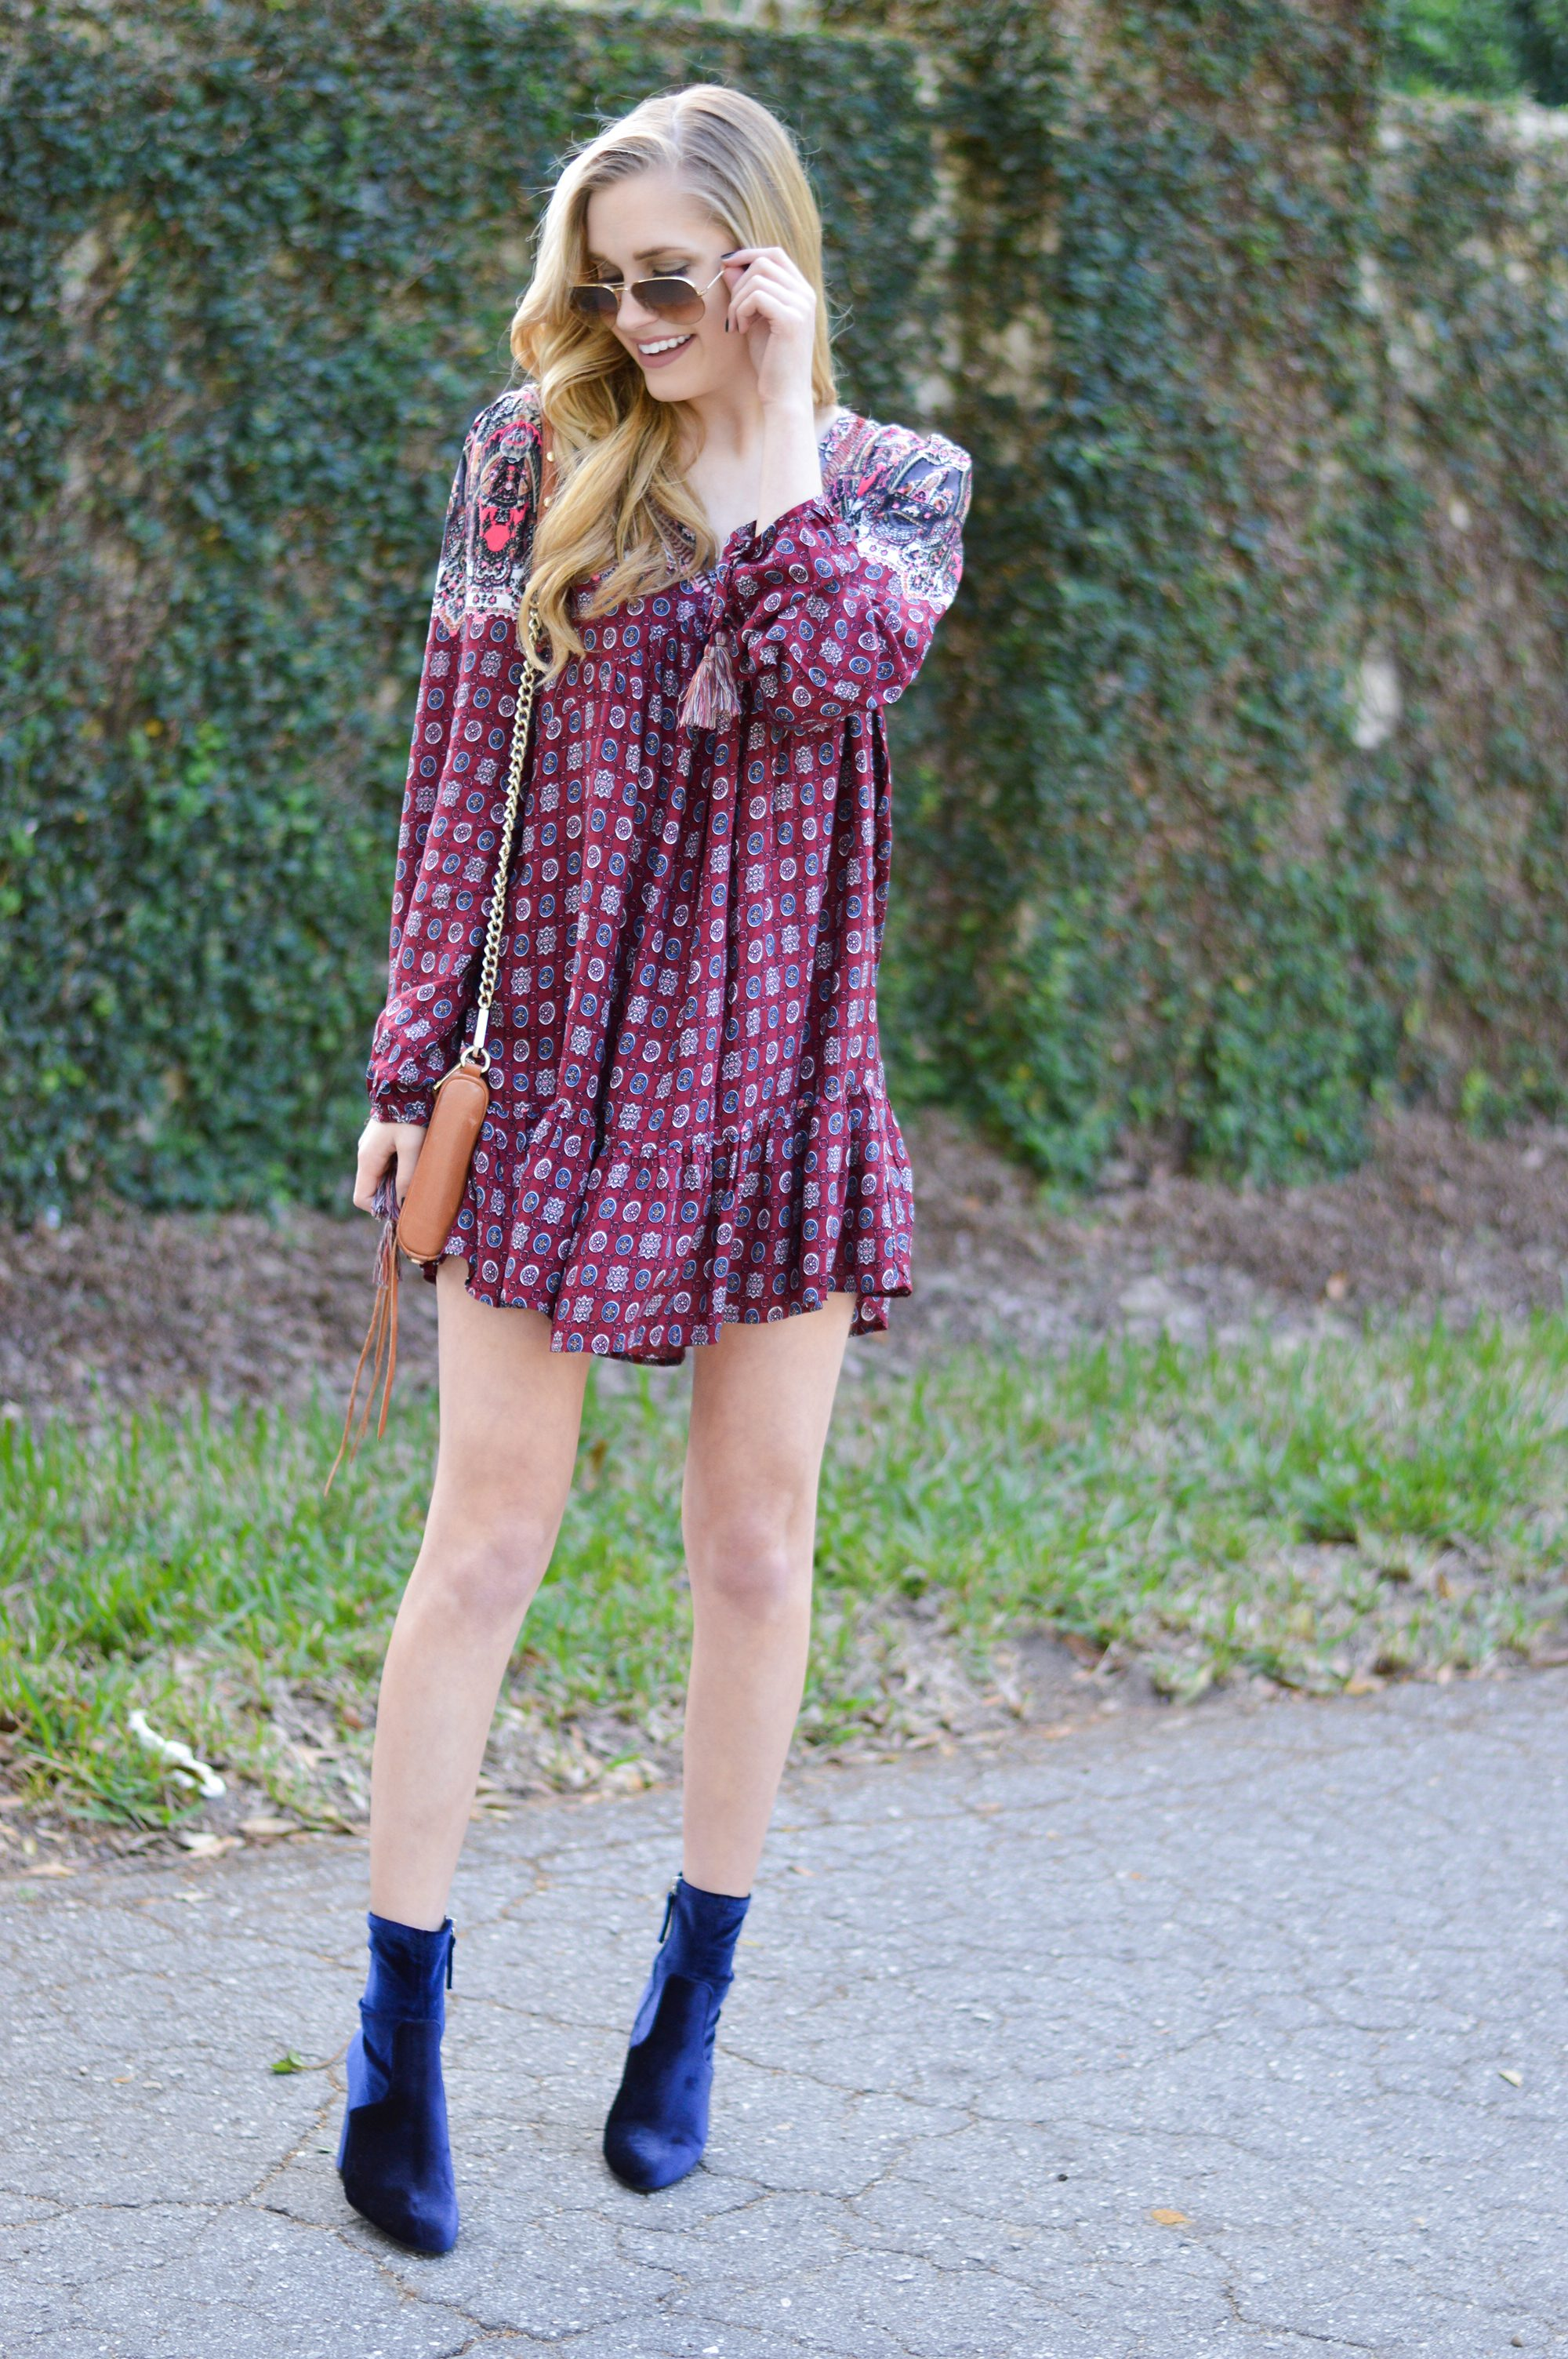 styelled-blog-fblogger-style-blogger-fashion-trends-fall-fashions-trendy-sweater-weather-dresses-fall-dress-suede-velvet-blue-blonde-src-shannon-roth-collections-ootd-umgee-04